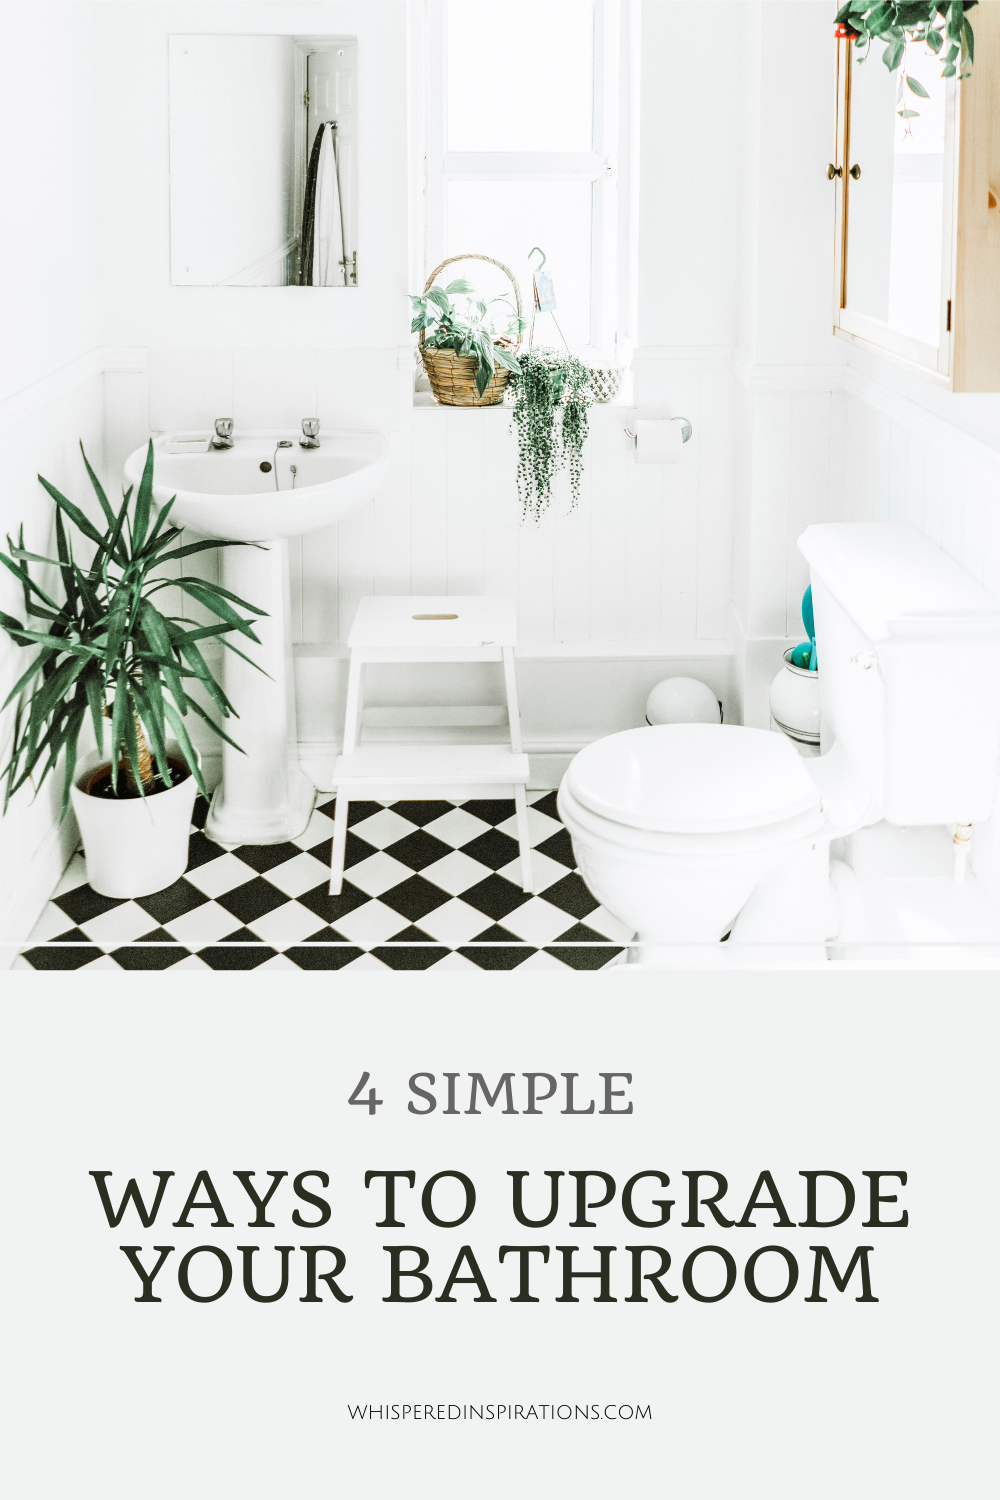 A black and white bathroom in need of some upgrades. This article covers 4 simple ways to upgrade your bathroom.